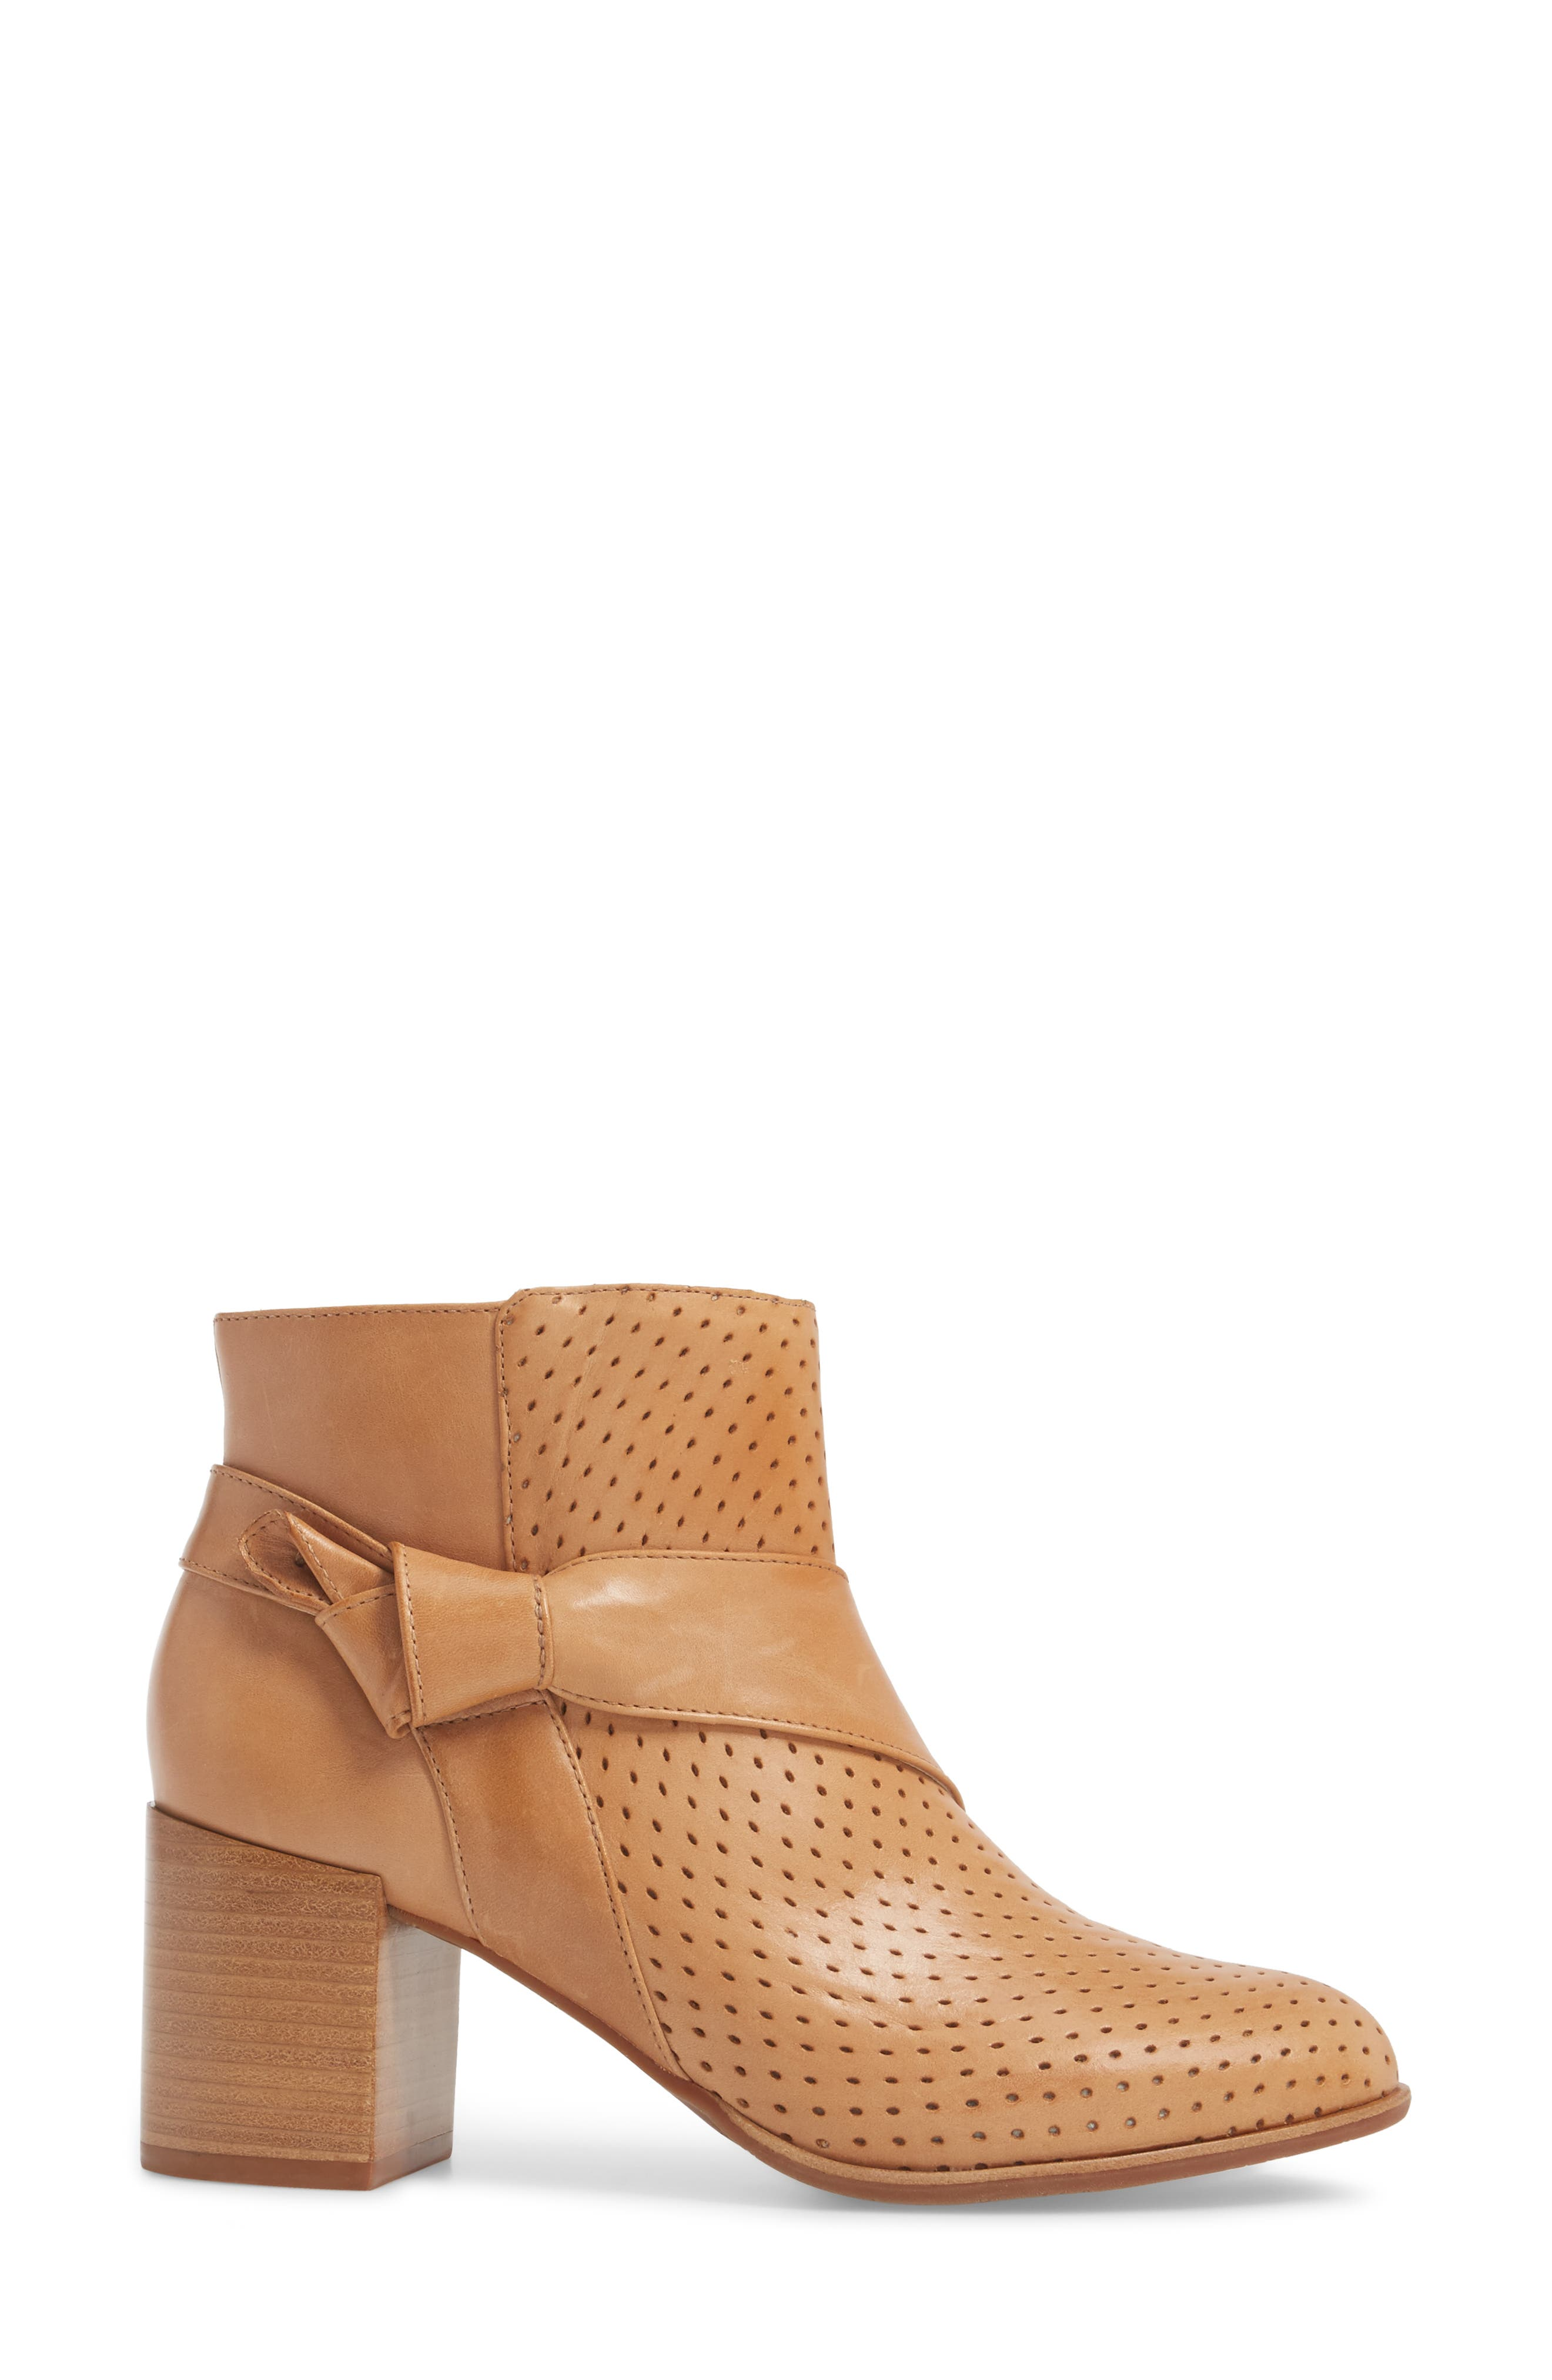 Felice Bootie,                             Alternate thumbnail 3, color,                             Tan Leather